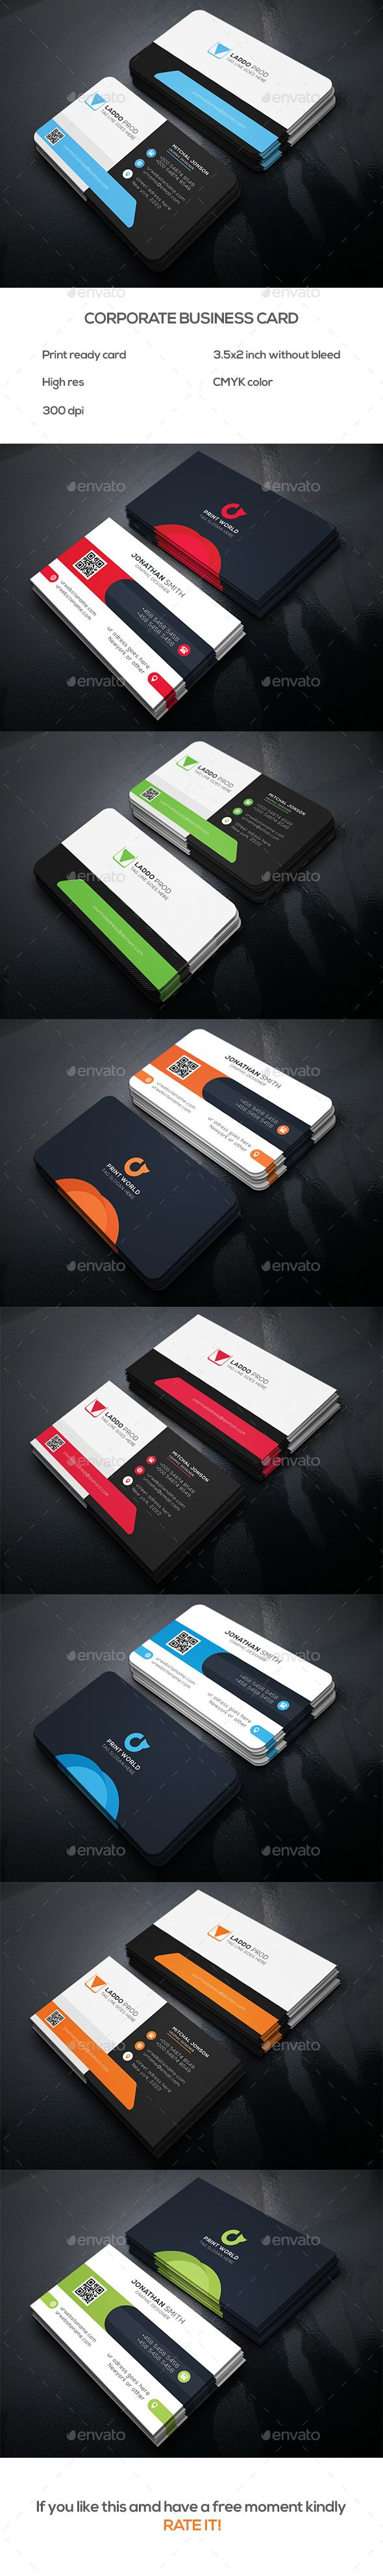 57 best business card inspiration images on pinterest